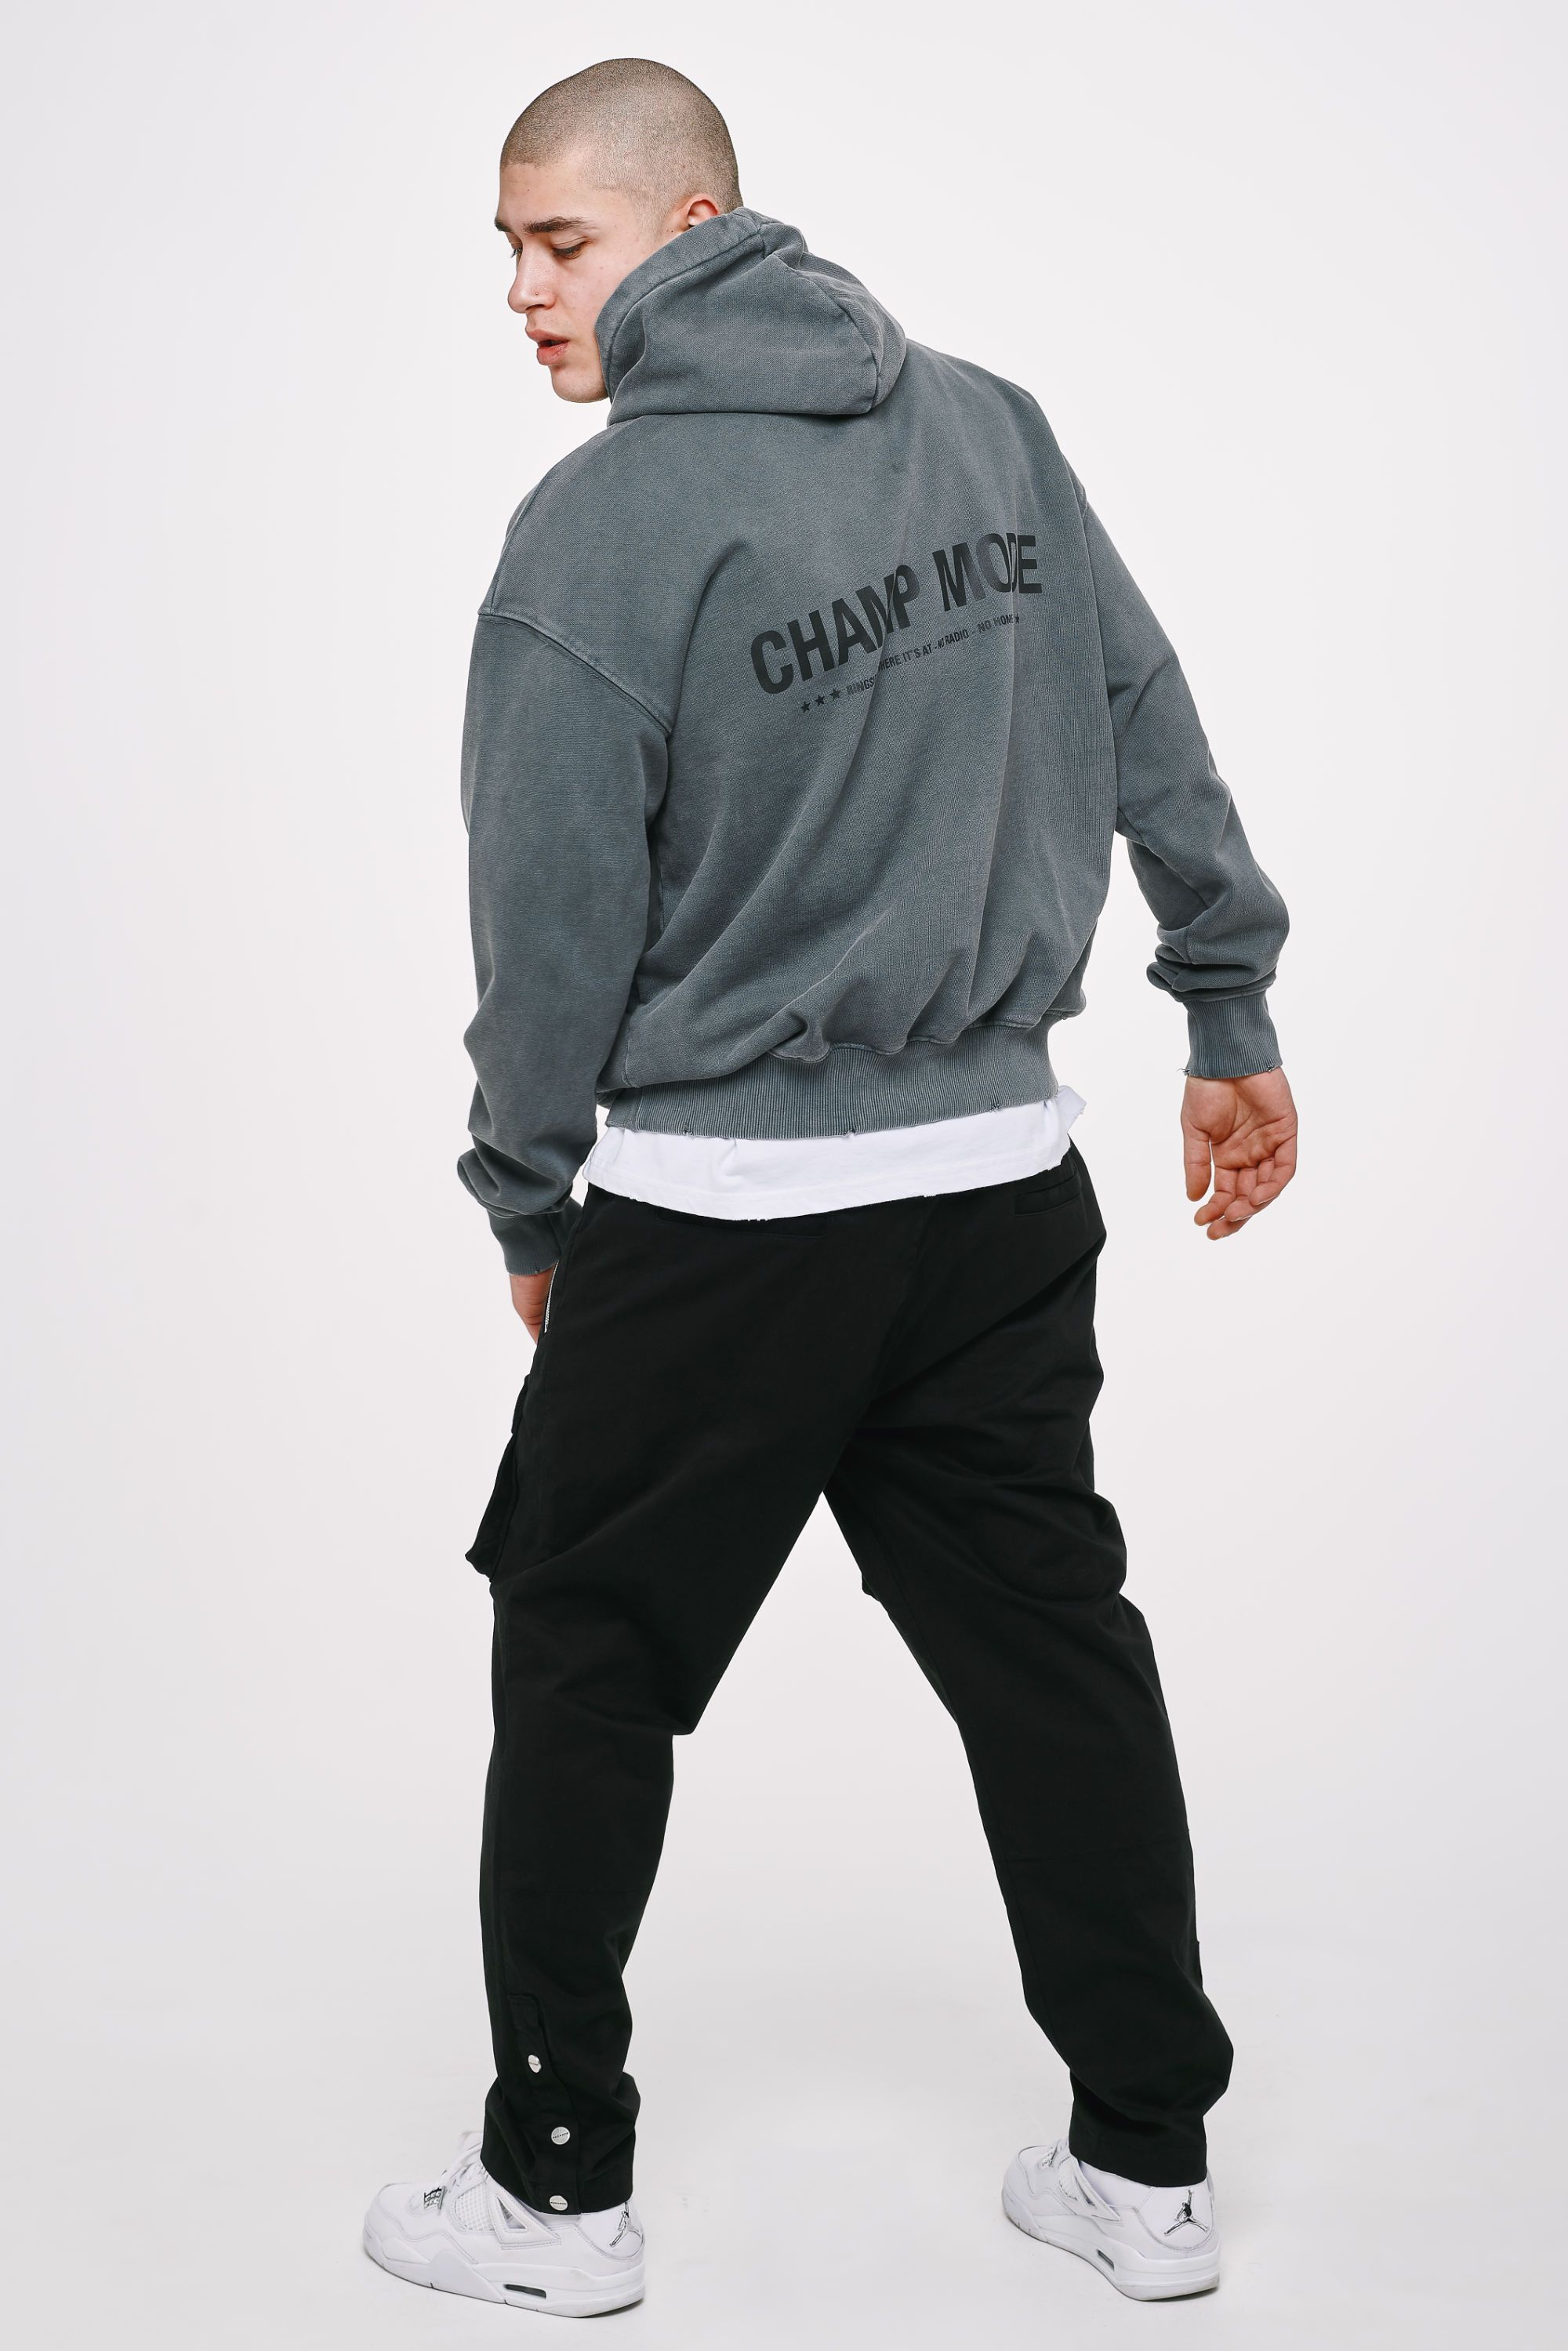 Mike Oversized Hoodie Vintage Grey Hoodies Heavyweight Champions